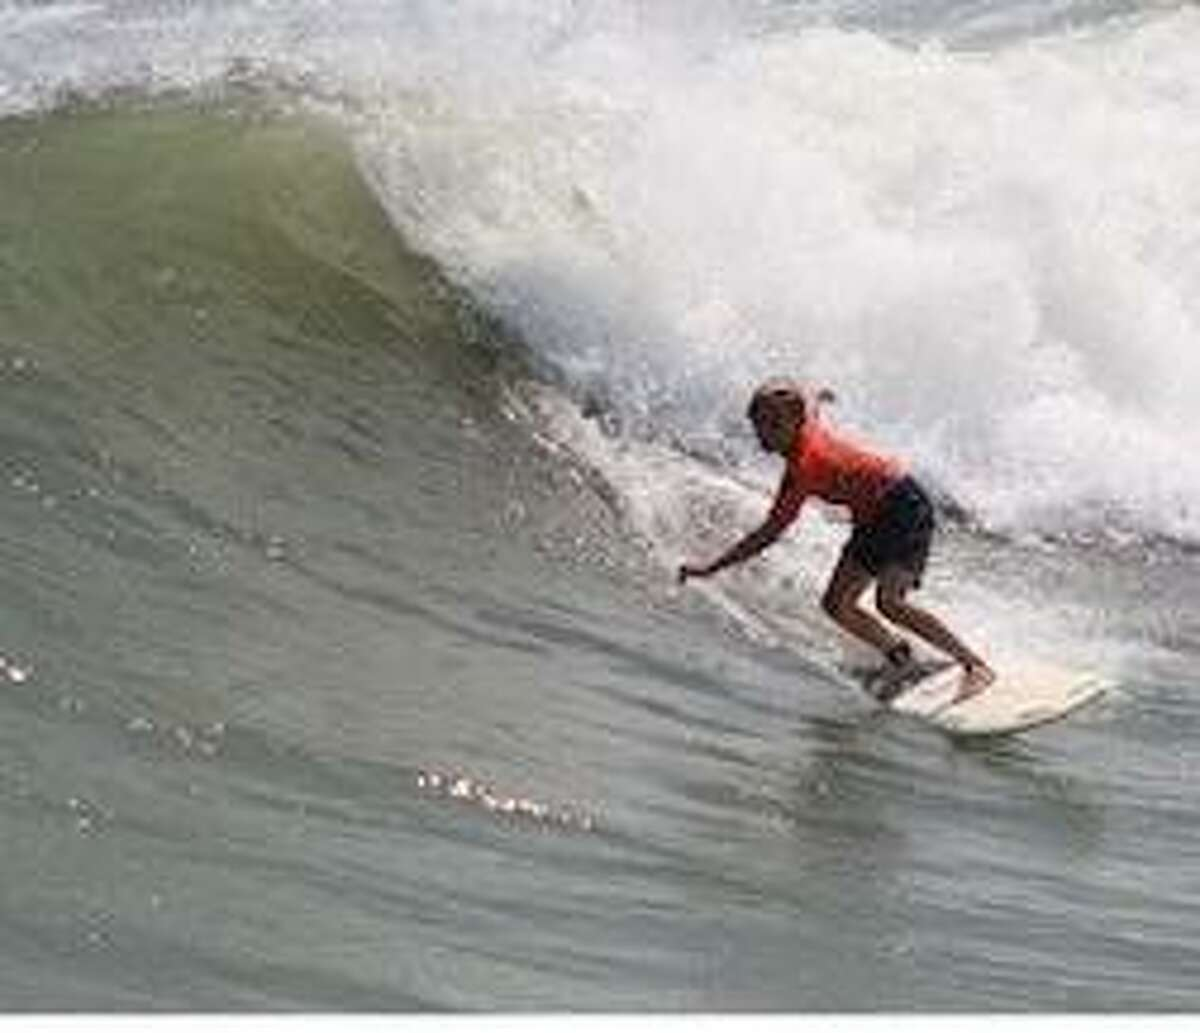 Likely riding a Tropical Storm Beta wave, Caden Shelton demonstrates to the judges his wave-riding abilities at the TGSA state championships.